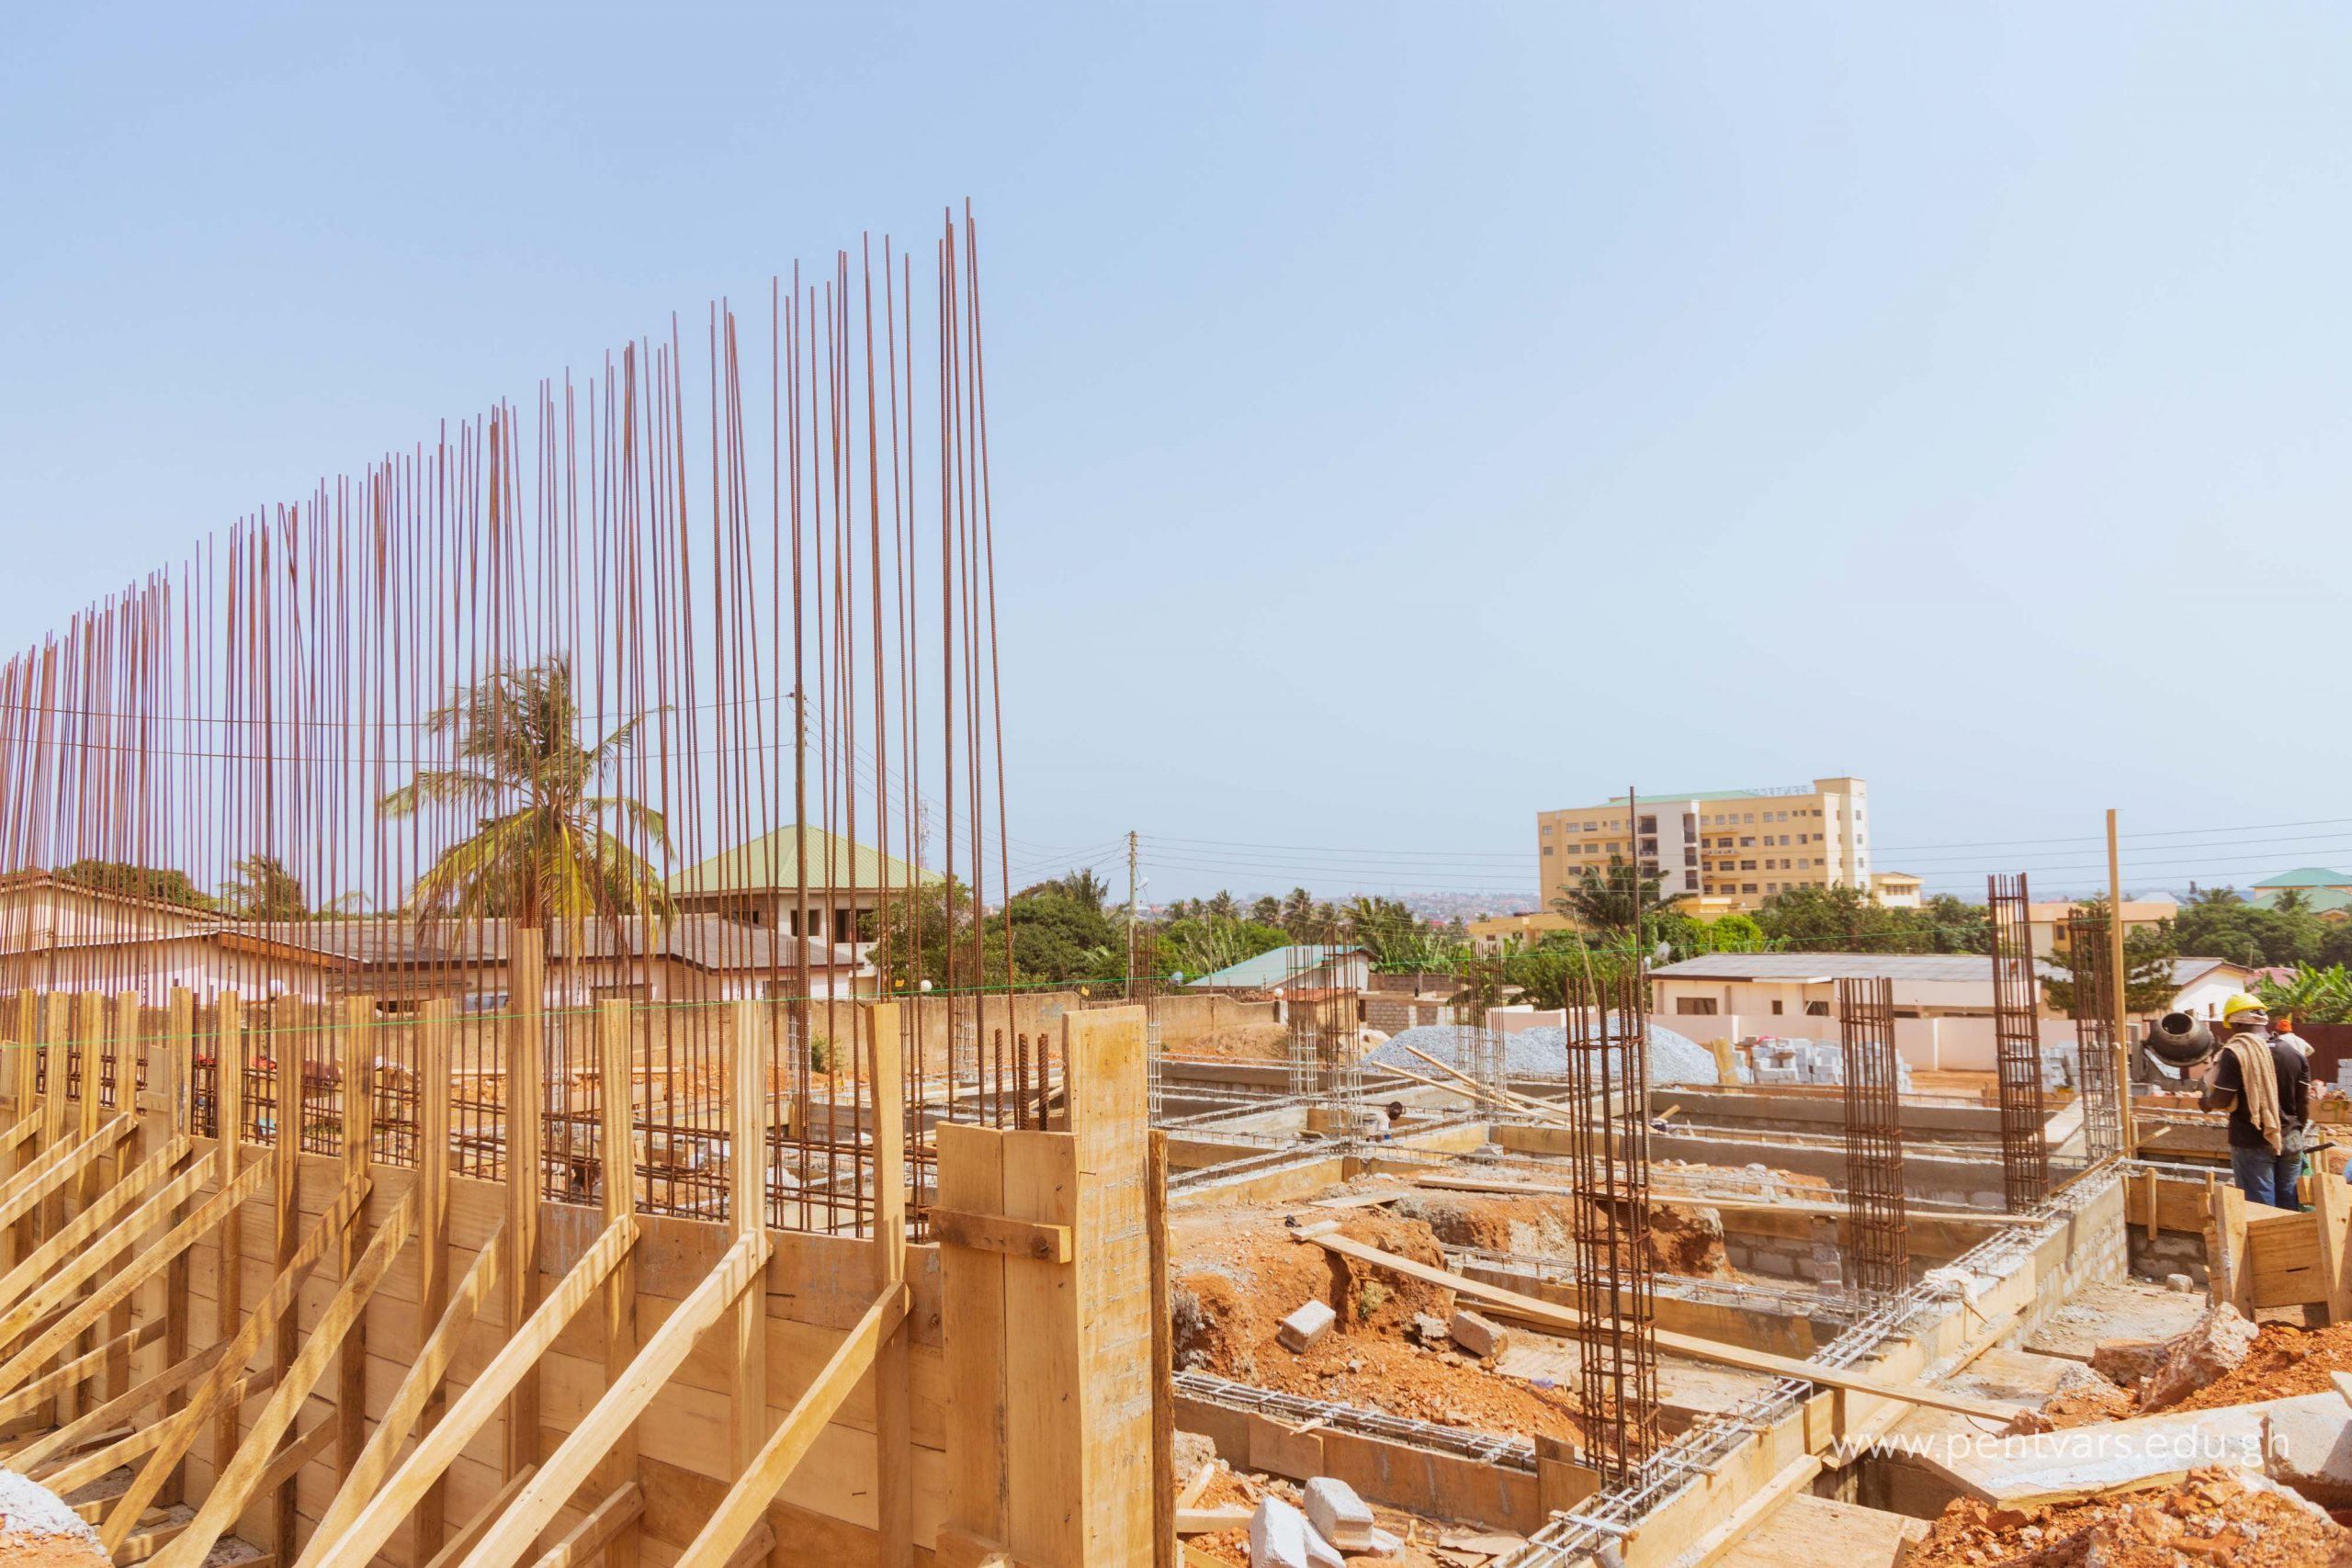 Work on Multipurpose Storey Building Progresses Steadily at Accra Campus